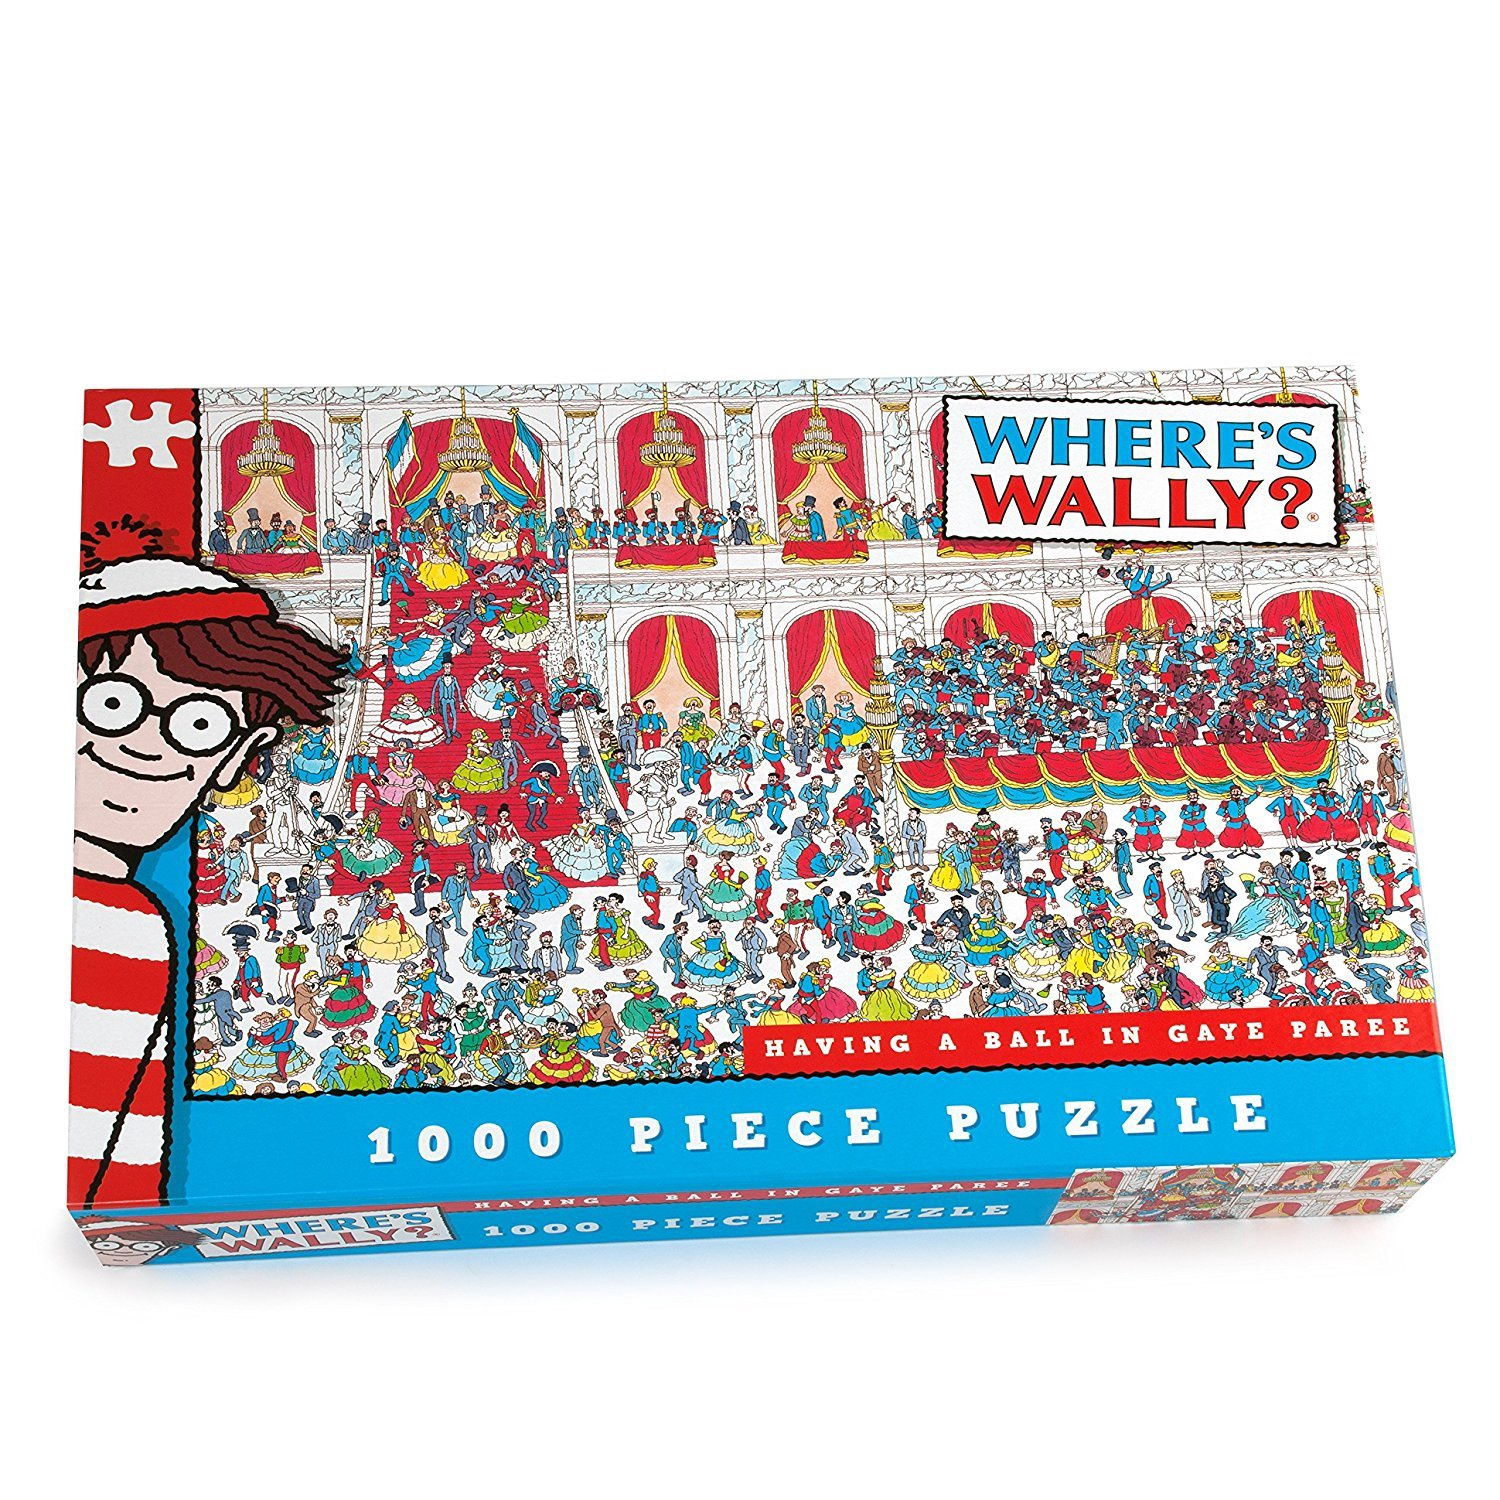 WHERE'S WALLY 1000 PCS